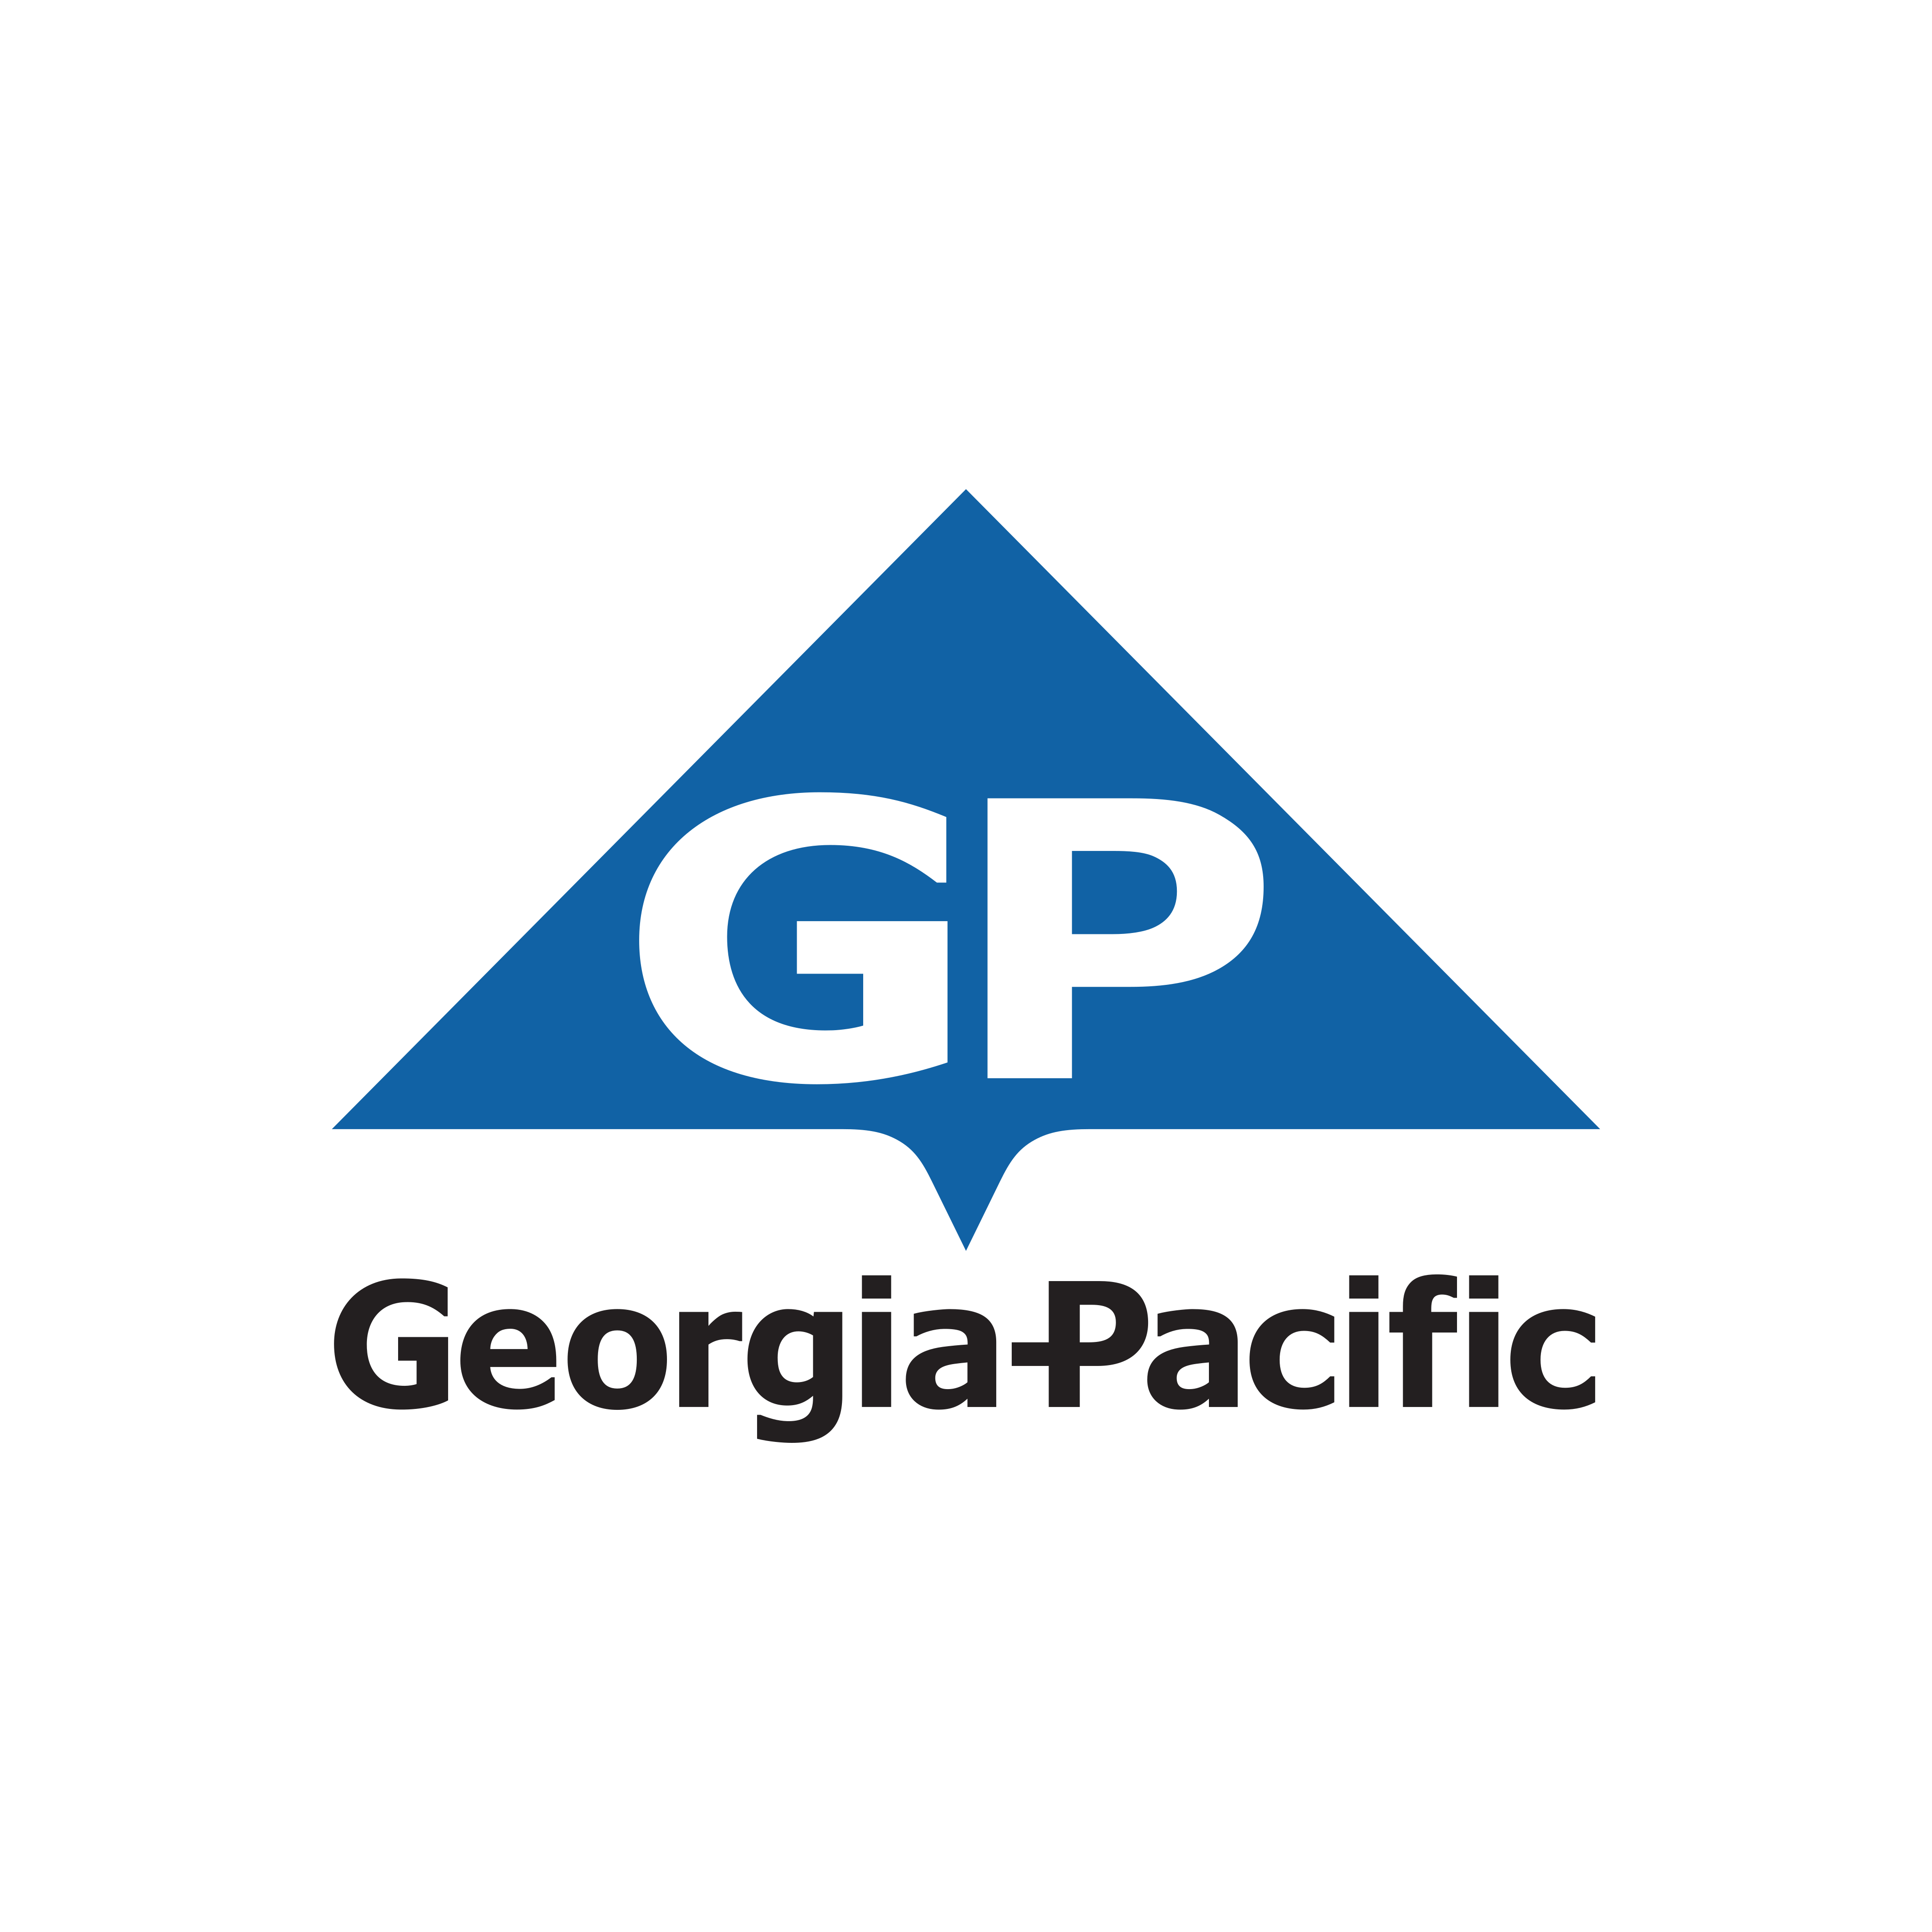 georgia pacific logo 0 - Georgia-Pacific Logo